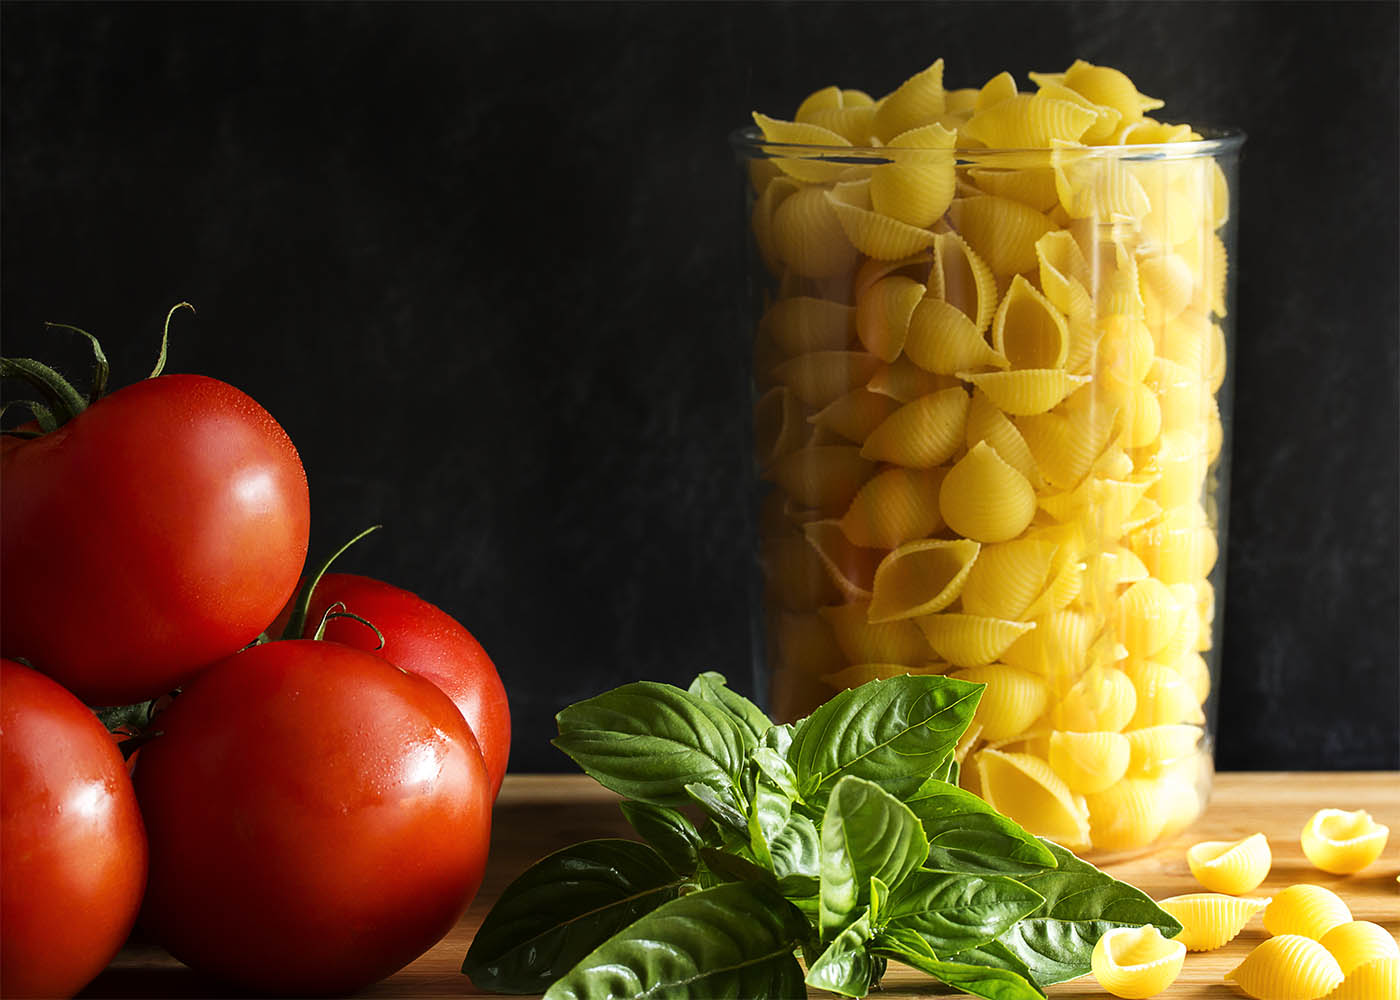 The main ingredients in pasta with raw tomato sauce - pasta shells, ripe tomatoes, and fresh basil leaves.